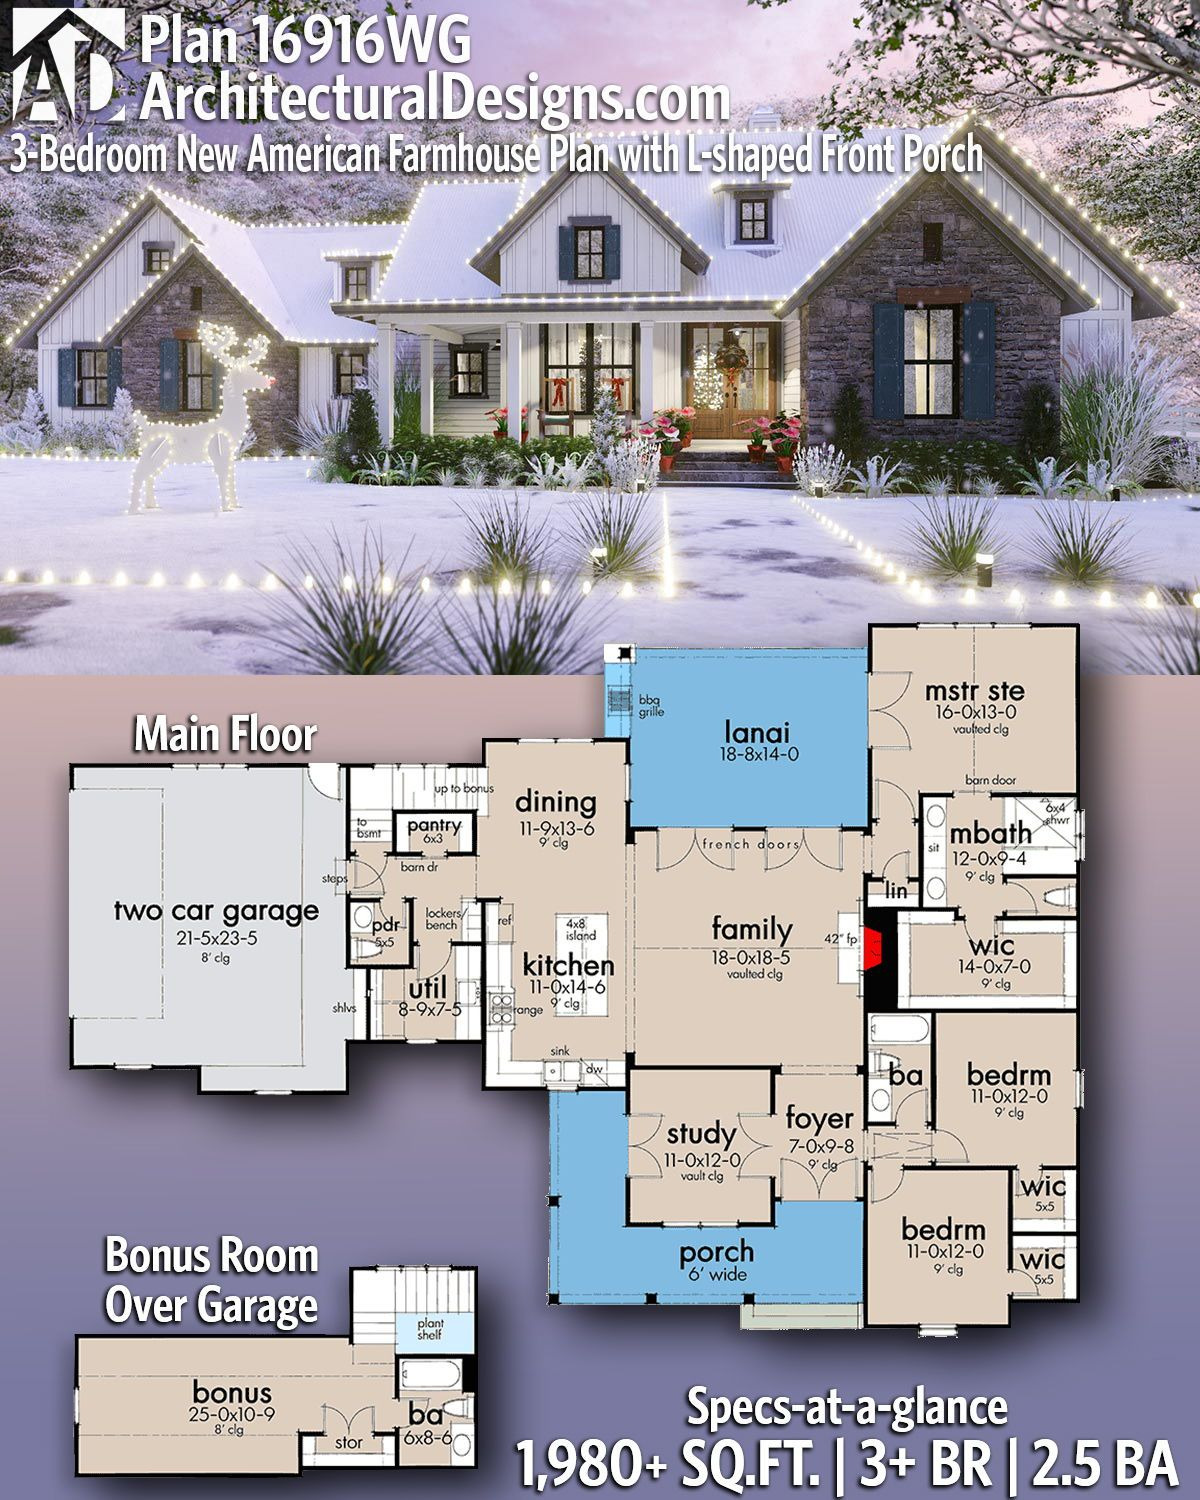 Architectural Design House Plans Beautiful Architectural Designs Selling Quality House Plans for Over